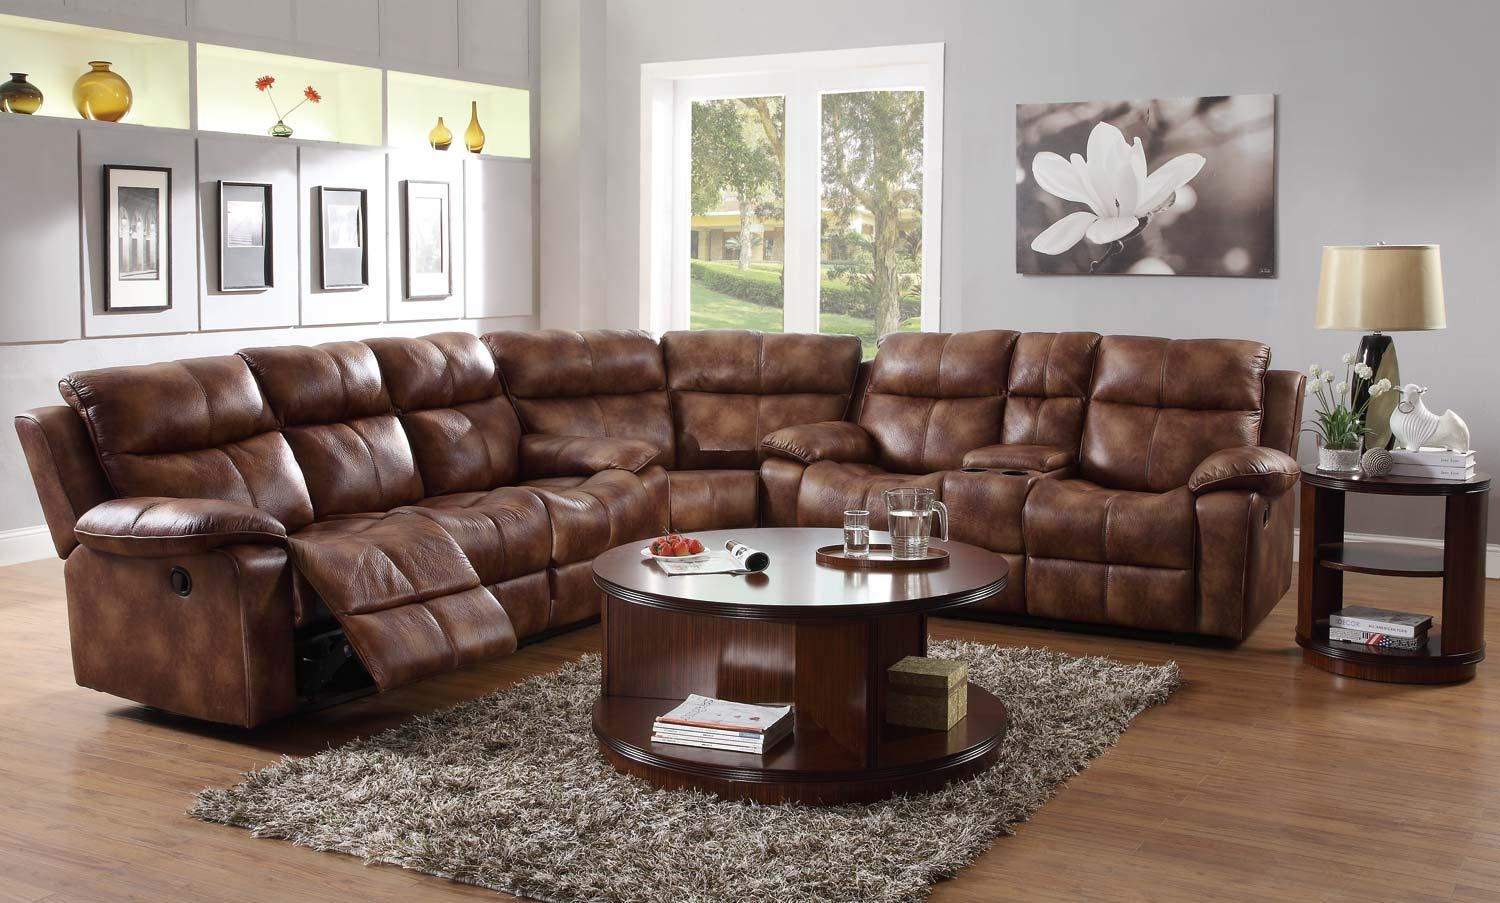 Sofas Center : Midtown Motion Sectional 1 Buyctional Sofas And For Motion Sectional Sofas (View 14 of 20)